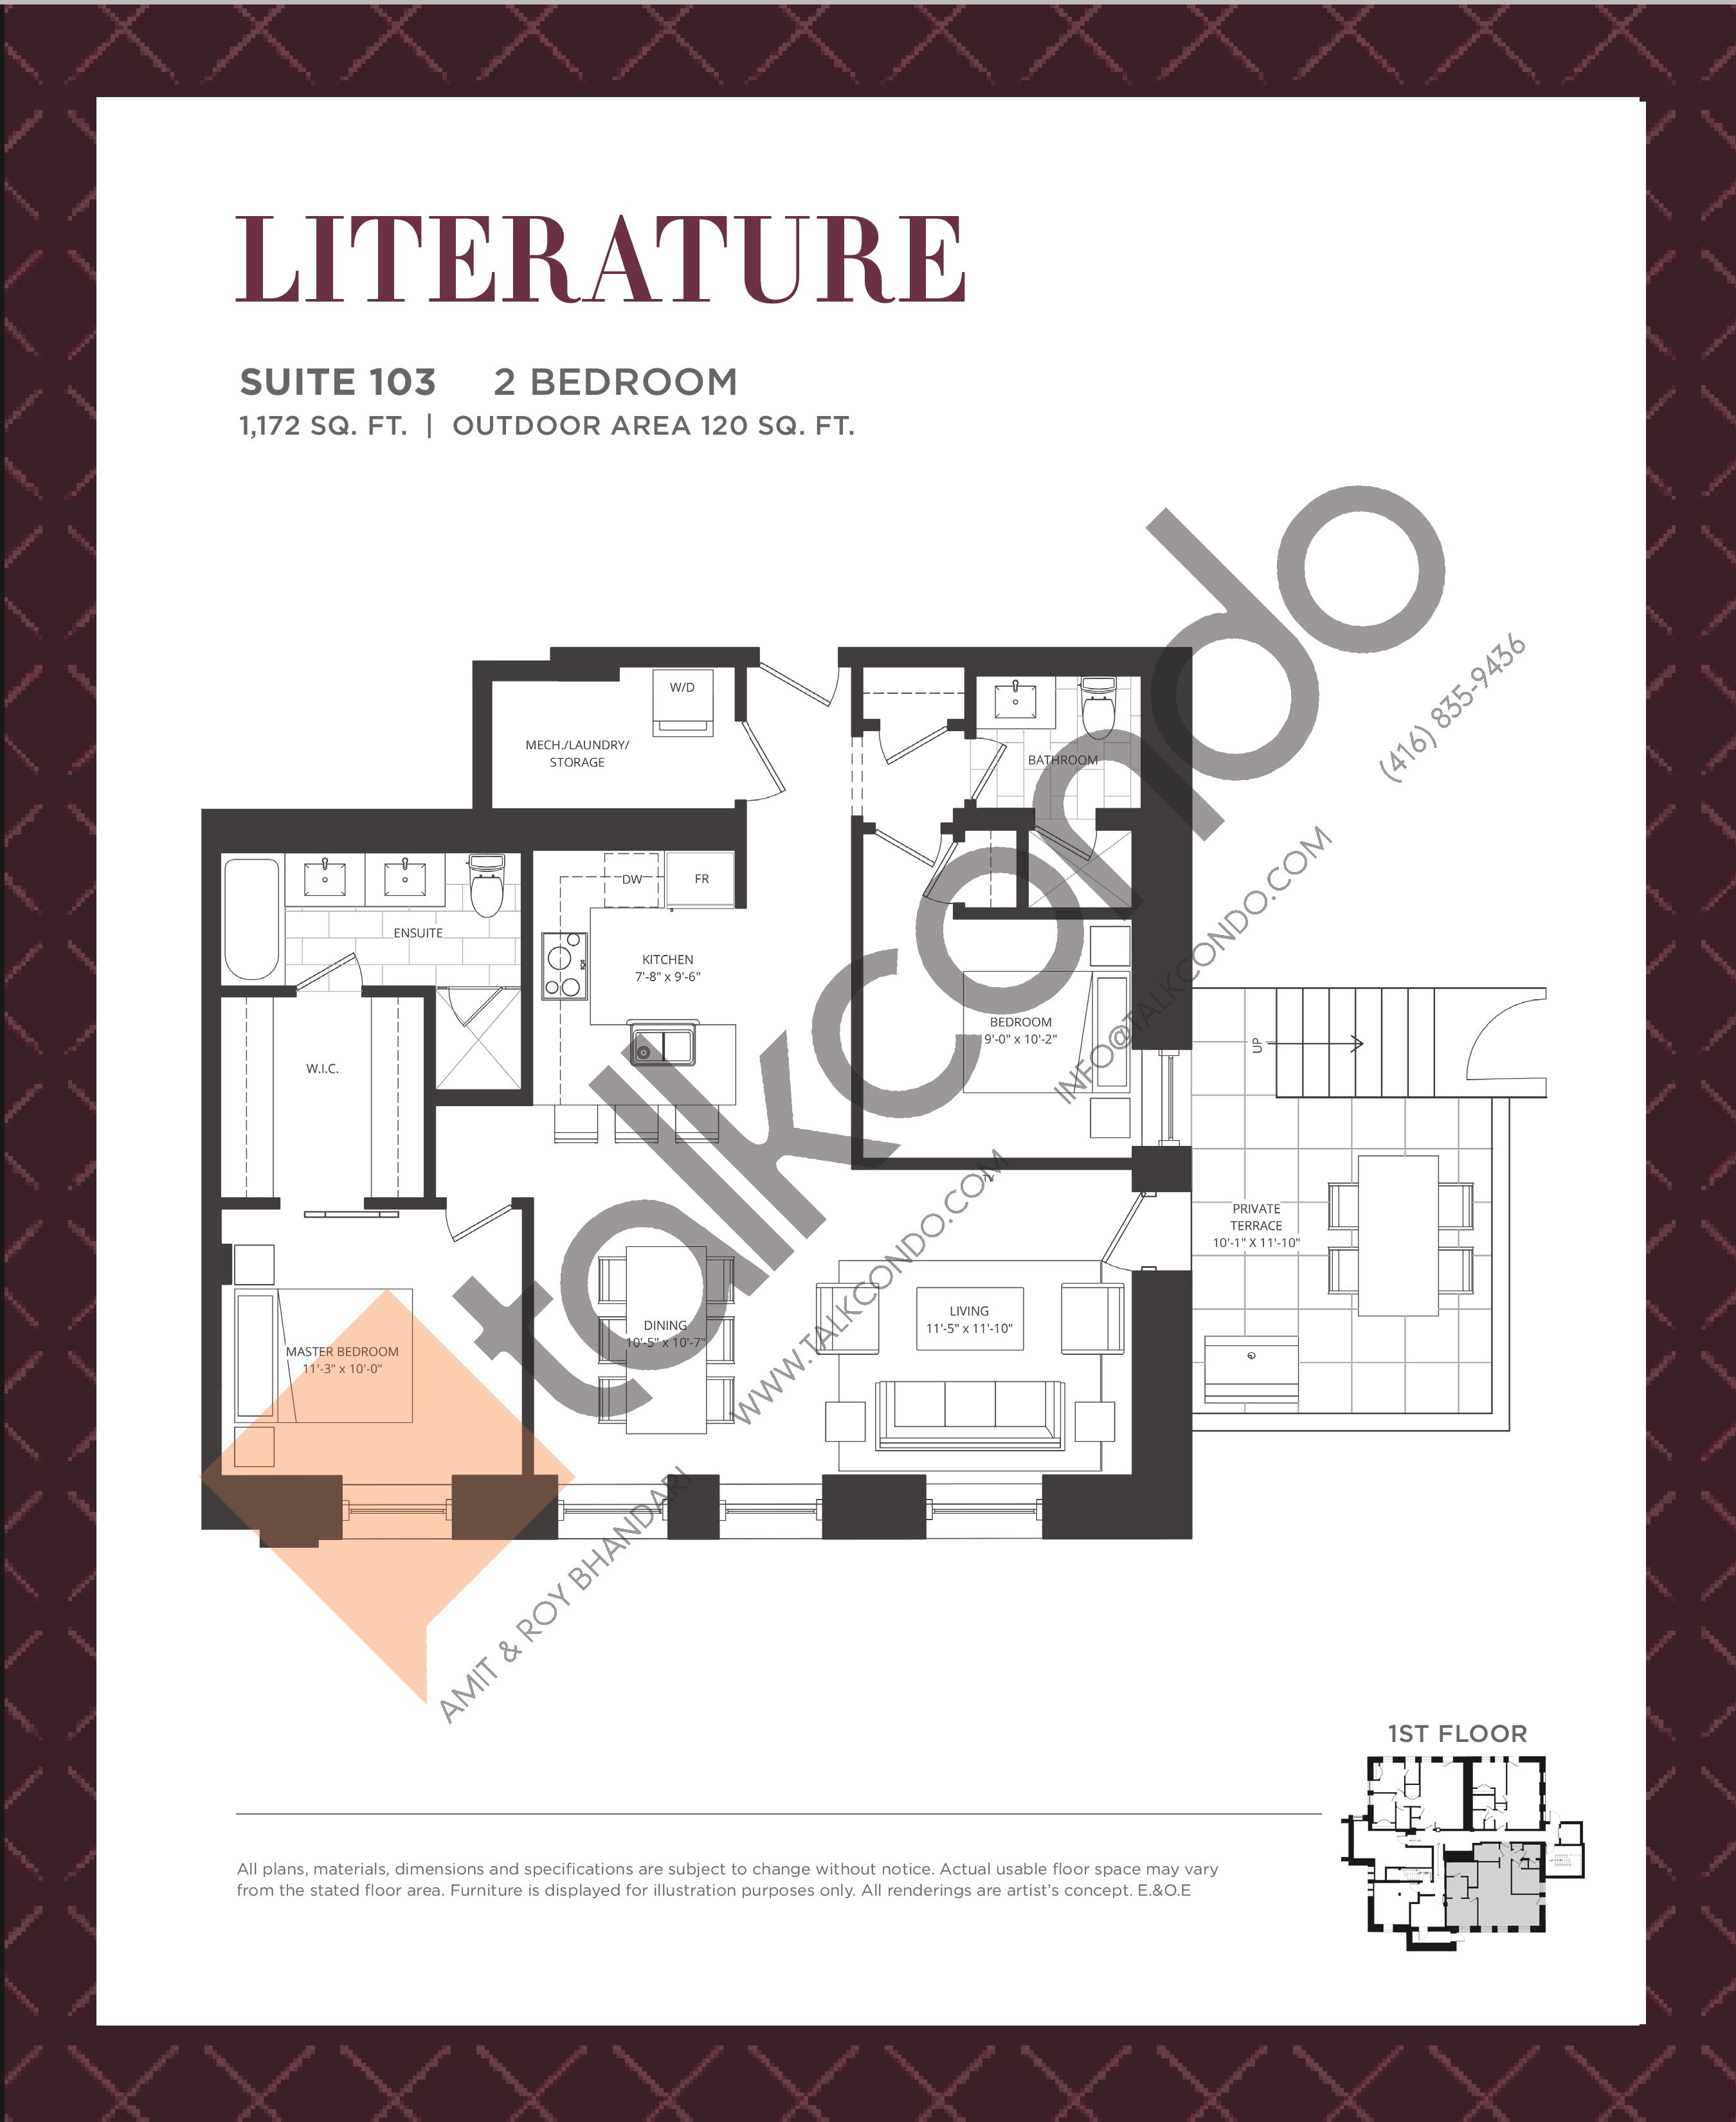 Literature Floor Plan at King George School Lofts & Town Homes - 1172 sq.ft